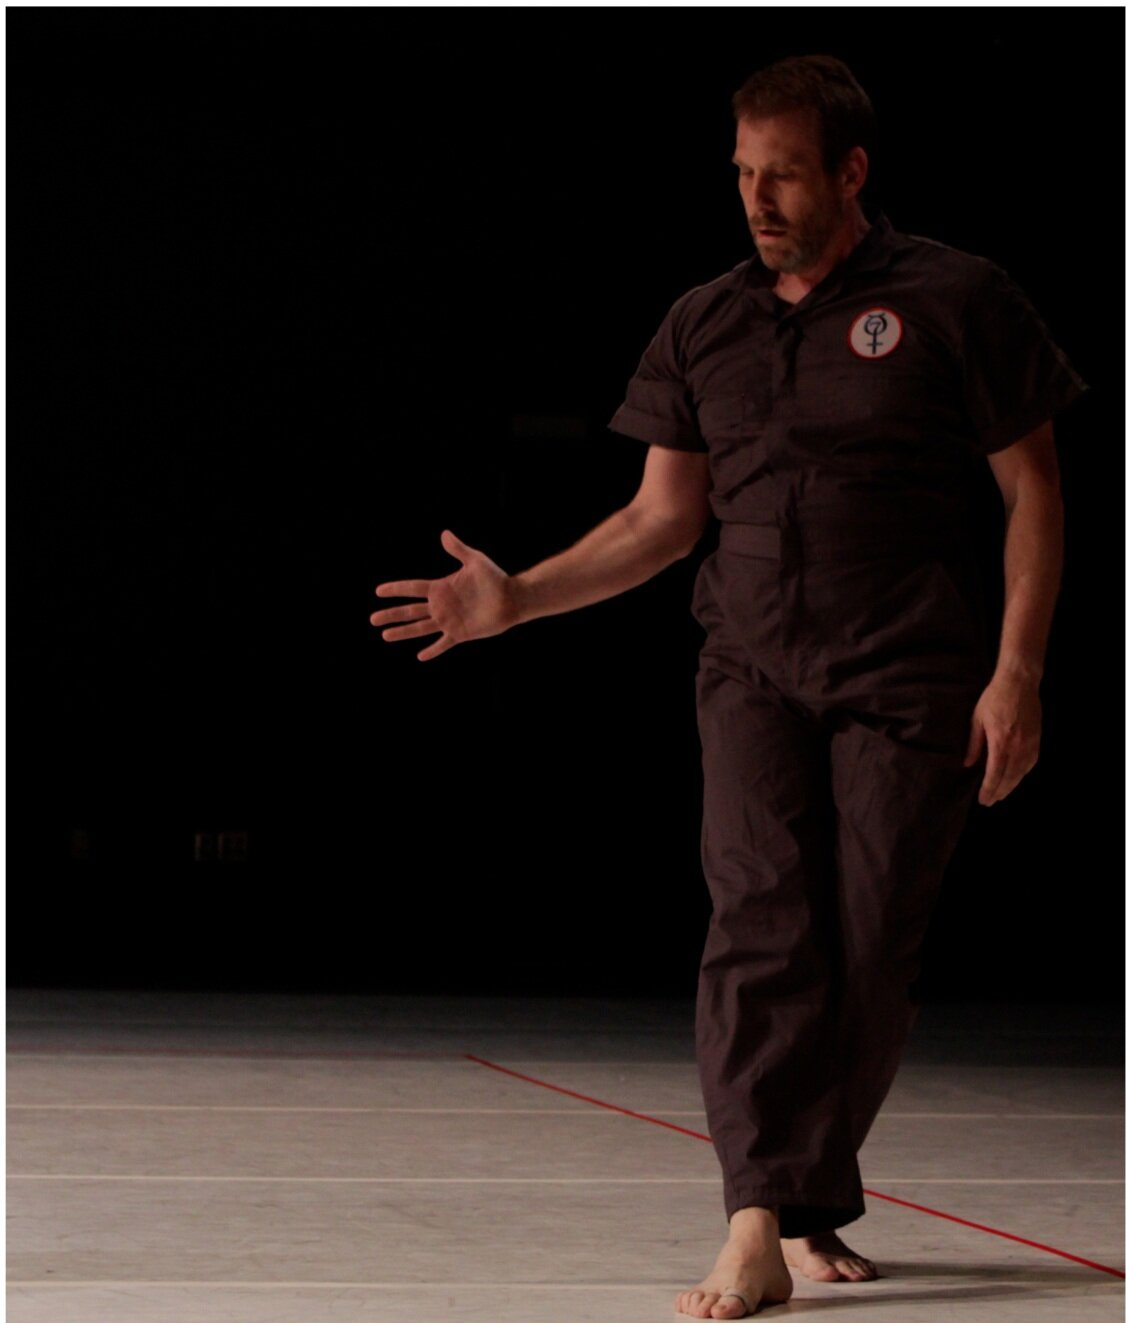 Gregory Catellier (Lighting Designer) , an Atlanta-based dance artist, choreographs, performs, teaches and designs lighting for dance. Catellier has designed lighting for hundreds of dances both in and out of academia for artists such as Paul Matteson, David Neumann and Lisa Race, as well as local artists at staibdance, CORE, Full RadiusDance and Ruth Mitchell Dance Theater, among others. Between2009and 2017, Greg Catellier was the lighting supervisor/resident light designer for the Bates Dance Festival. The following year, he shifted into the role of the production manager with the festival. Catellier started dancing at Webster University before earning a BA in dance from Arizona State University and his MFA in dance with an emphasis in design and production from Ohio State University. As a professor of practice at Emory University, he teaches modern dance technique, principles of design, lighting design, choreography, movement improvisation and contact improvisation.In addition, he acts as resident dance lighting designer and technical director for EmoryDance Program. Catellier has been manufacturing eclectic dances forAtlanta's discerning local community since 2002. Catellier Dance Projects ,  initiated in 2010, is an organization dedicated to creating intimate dance performances for the Atlanta community. His award-winning dance for camera collaborations with Seattle-based dance/media artist Jeff Curtis have been selected for many dance for camera festivals.The most recent film,  Transit,  has been selected for more than 20 international film festivals